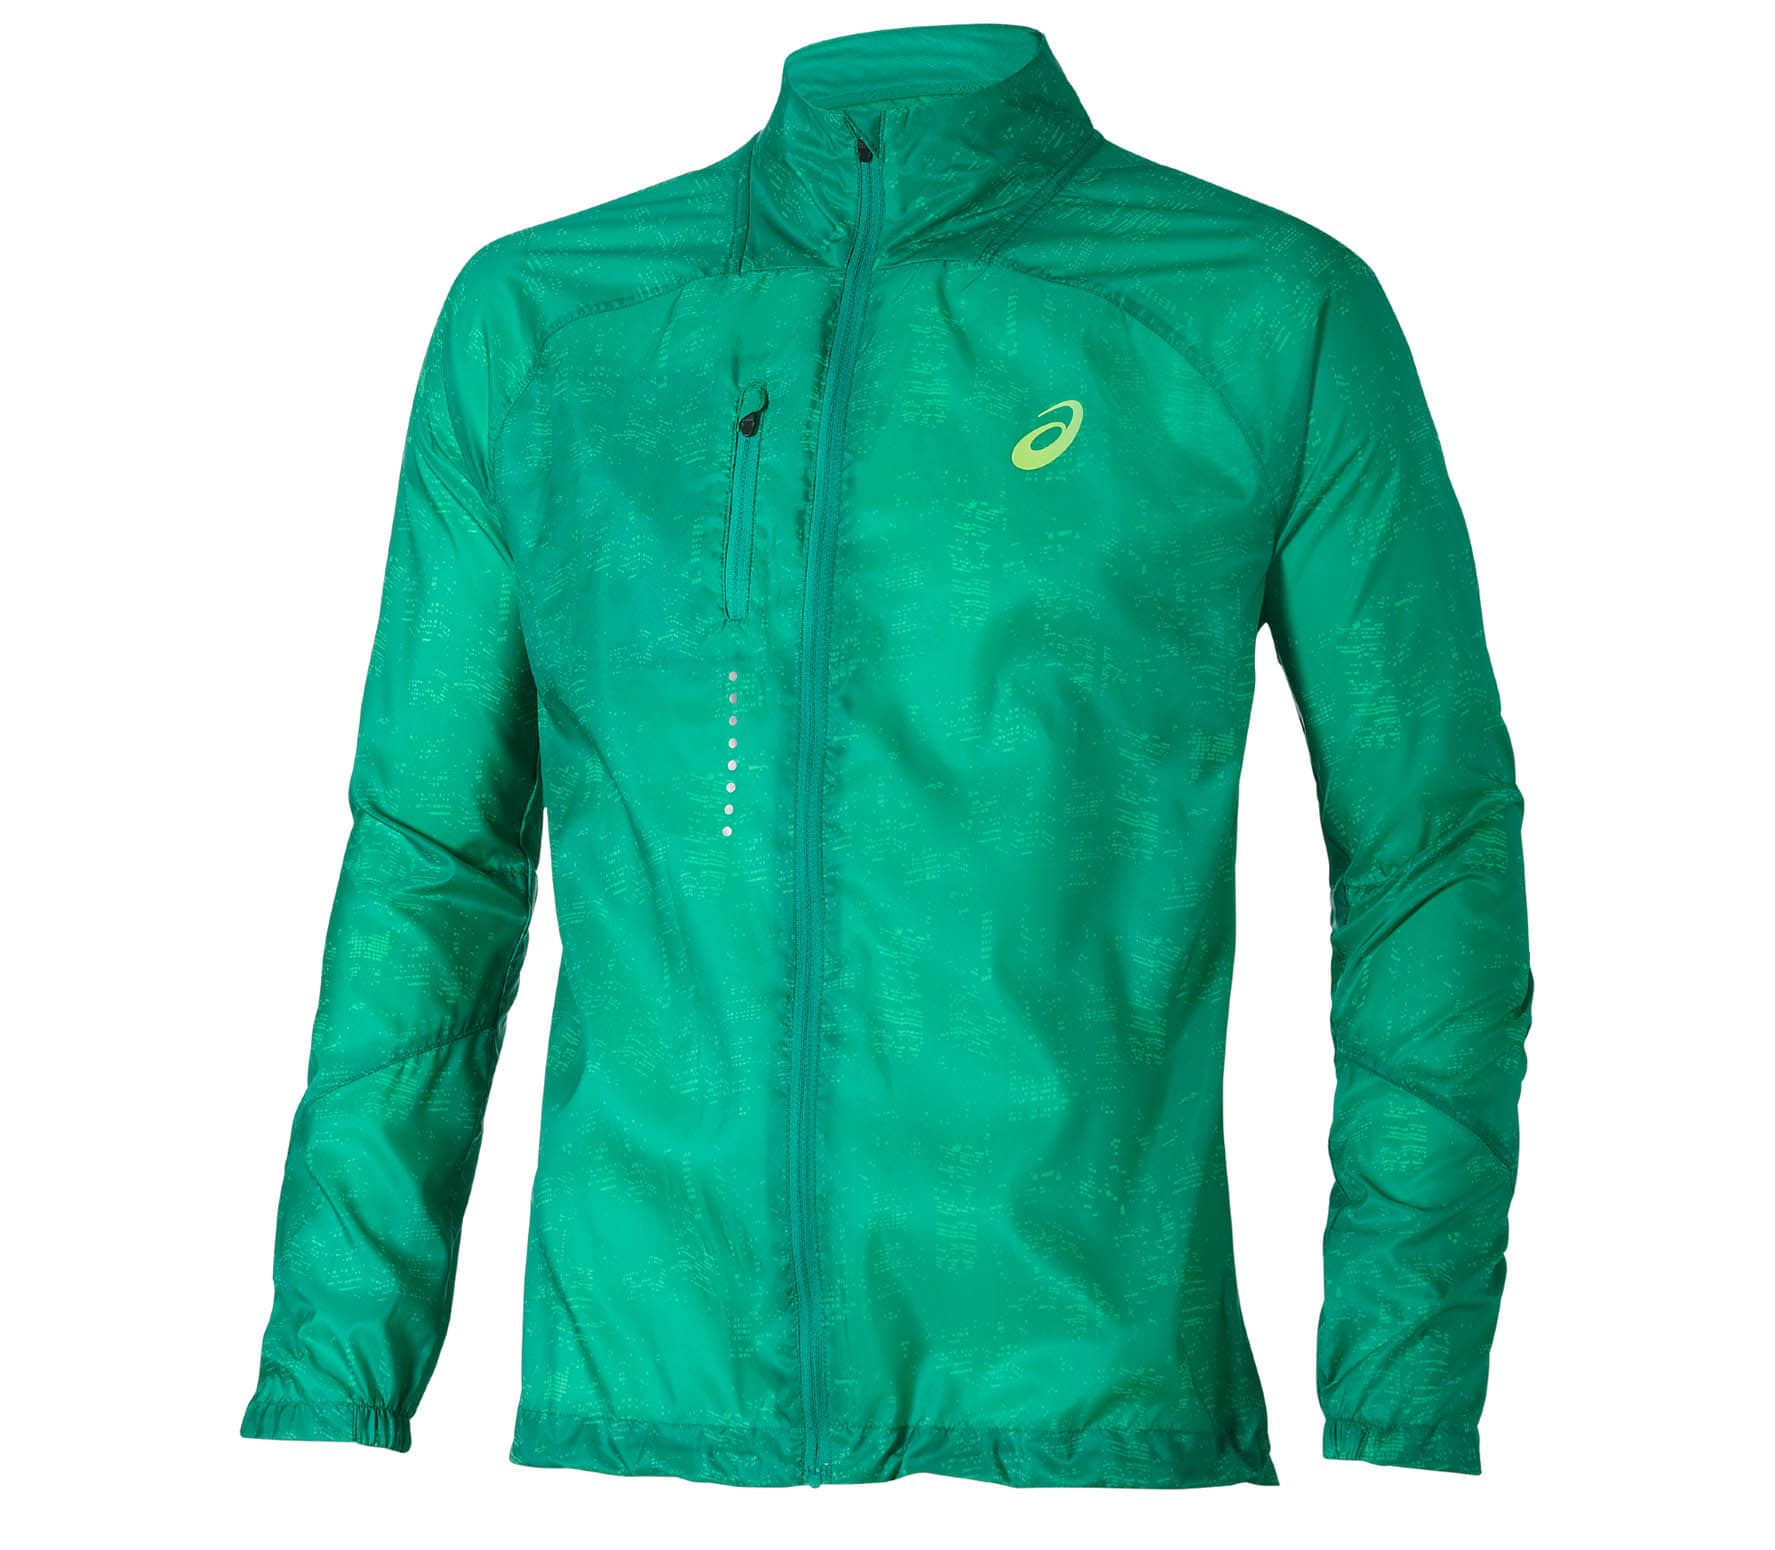 the cheapest offer discounts order ASICS - Lightweight Veste de running pour Hommes (vert)